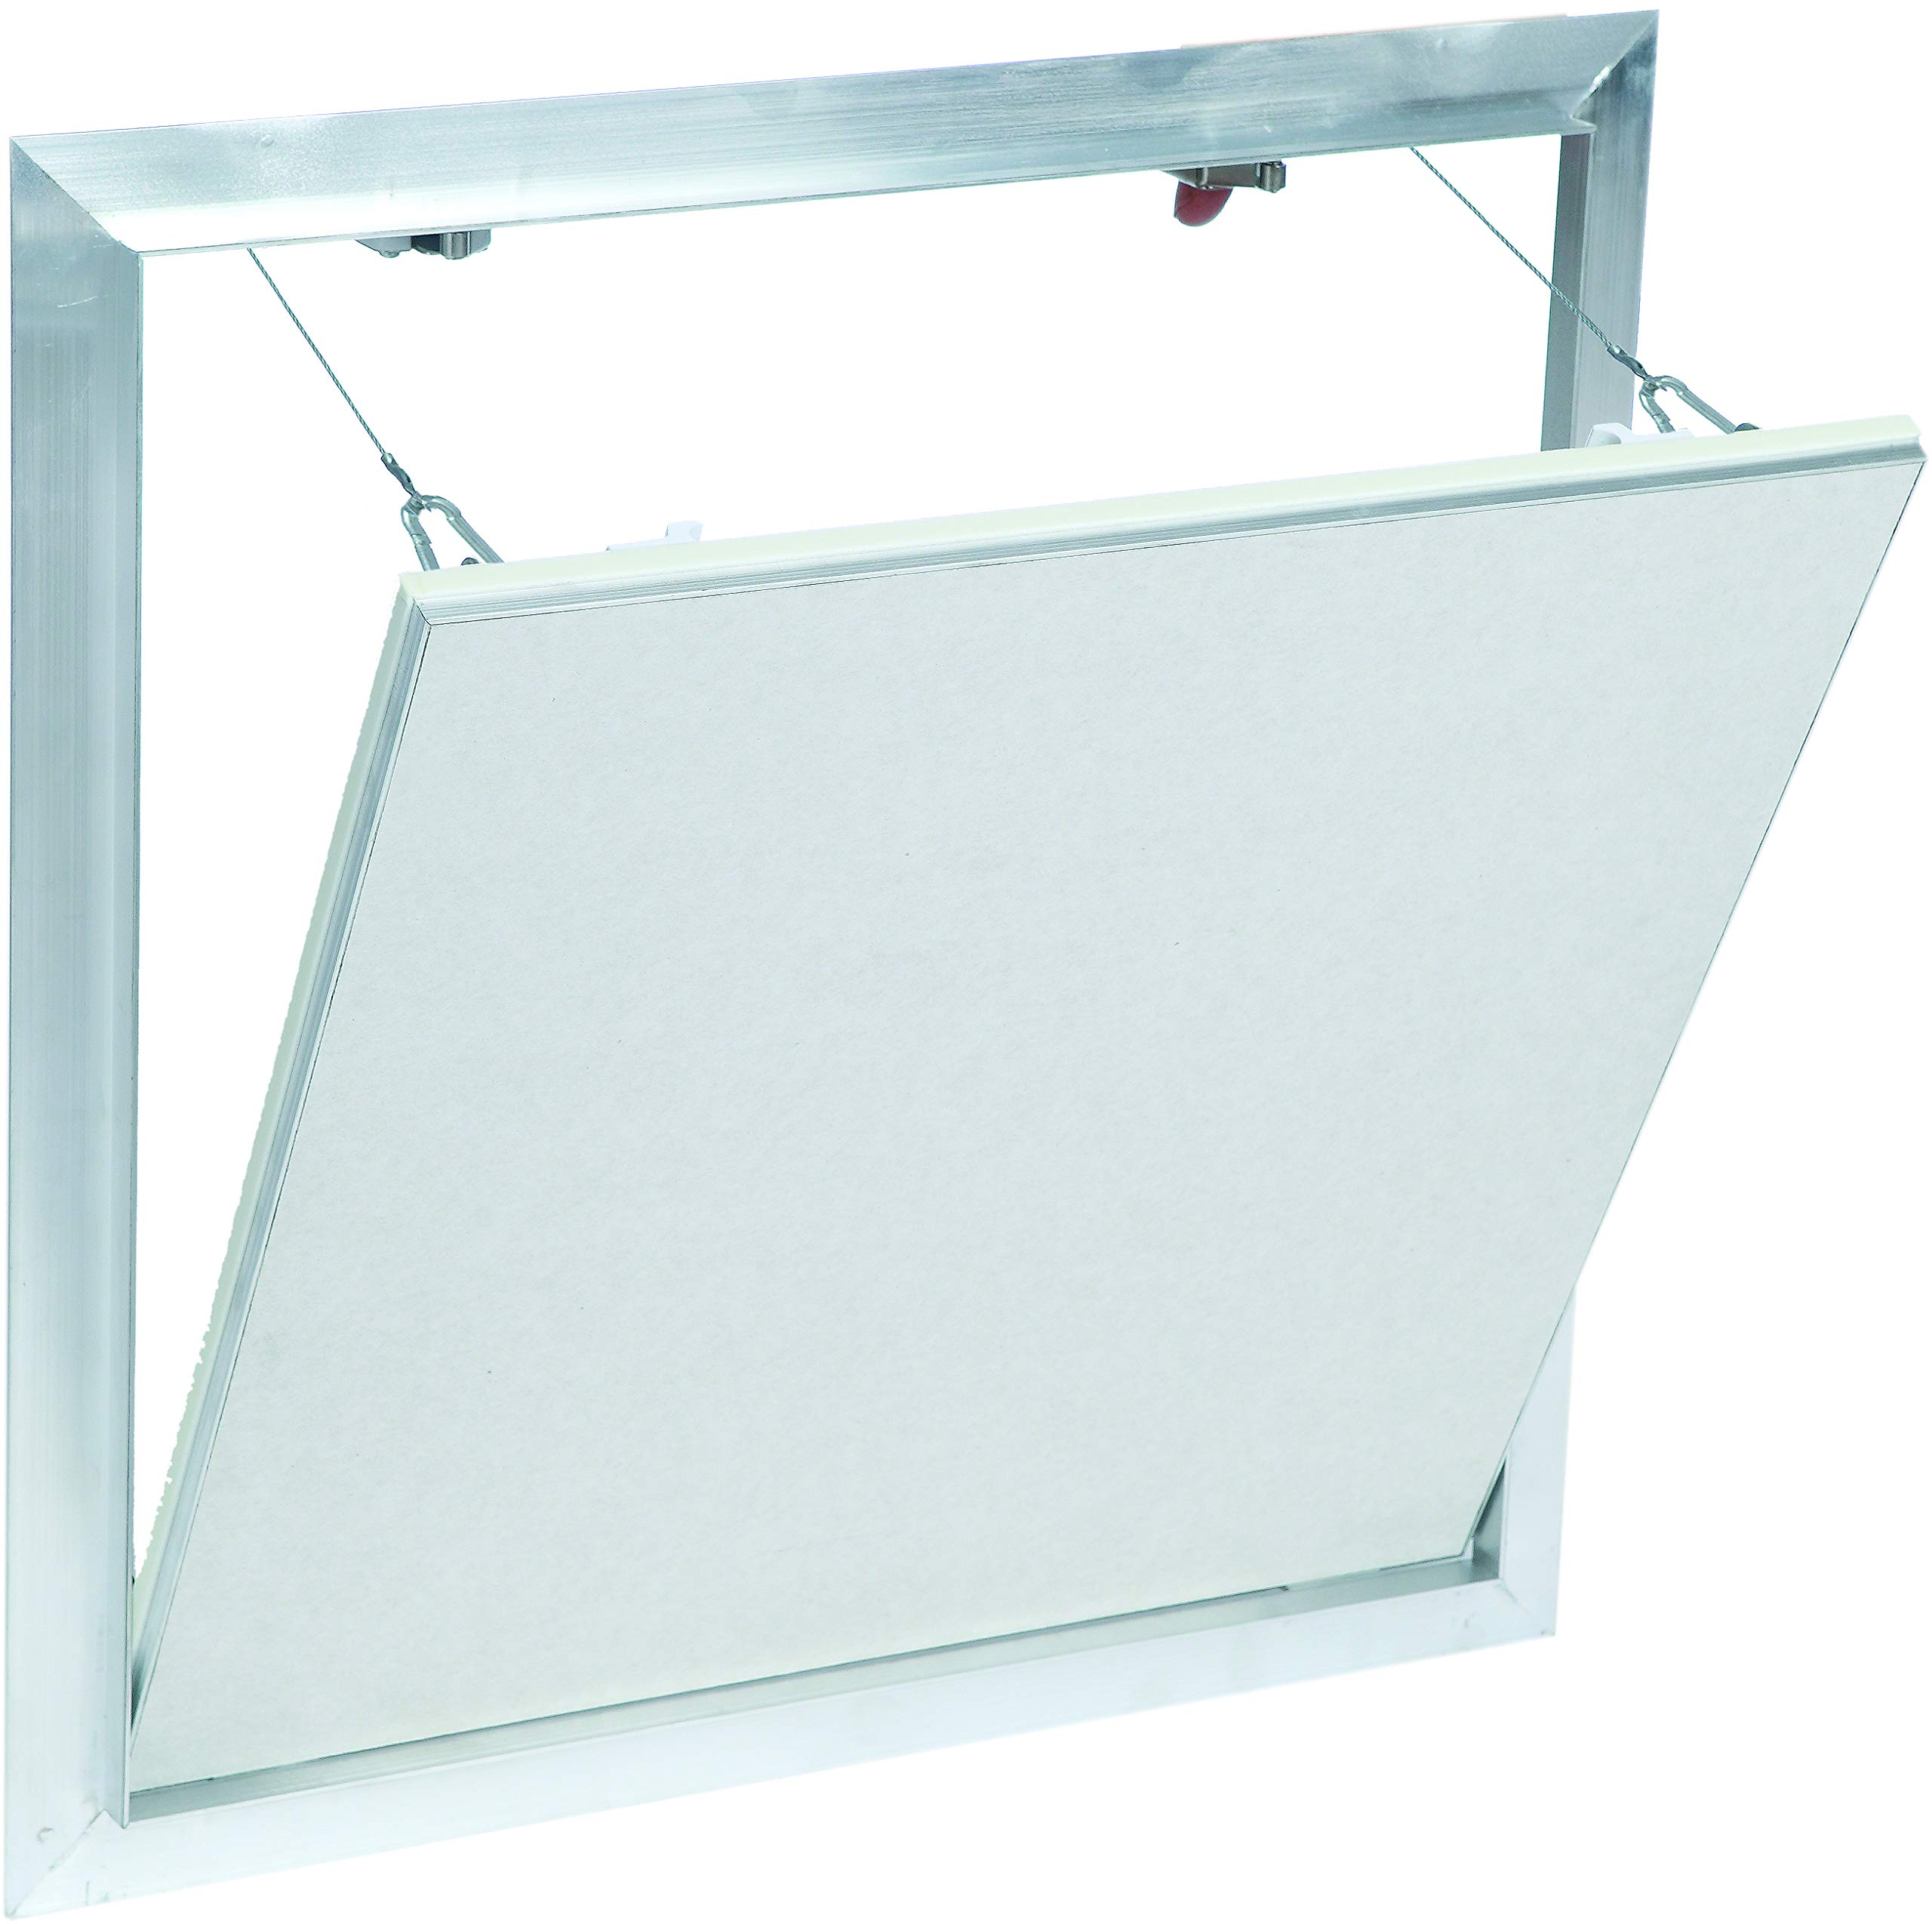 Attic Access Panel / Attic Hatch 22'' x 30'' For Icynene Classic Max for Ceilings, With 5/8 Drywall Inlay by FF Systems Inc